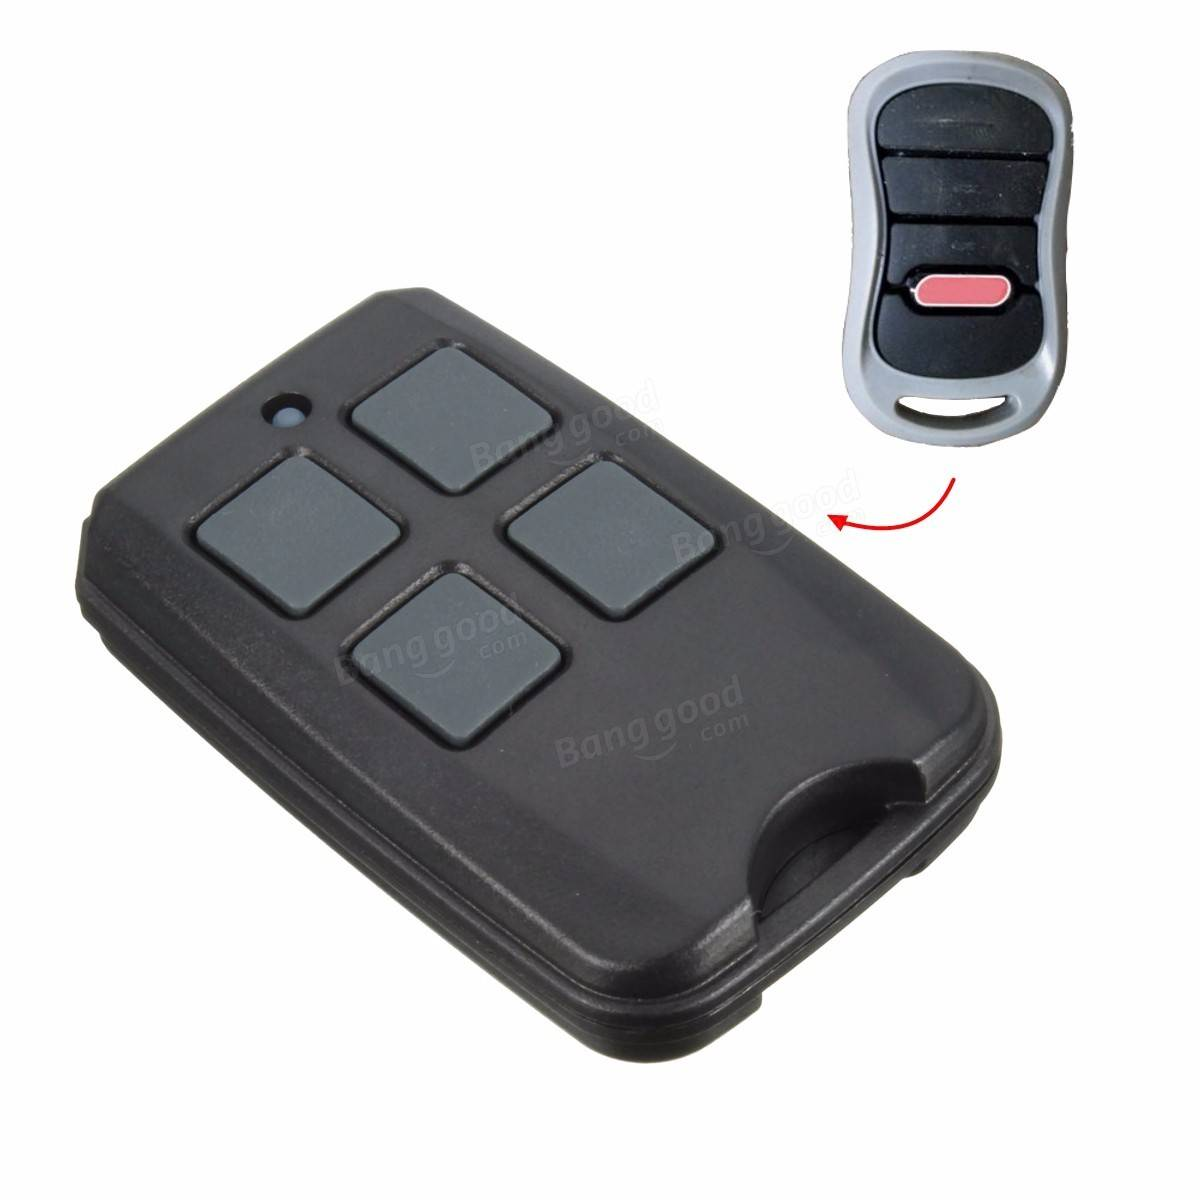 4 Button 315 390mhz Garage Gate Remote Control For G3t Bx